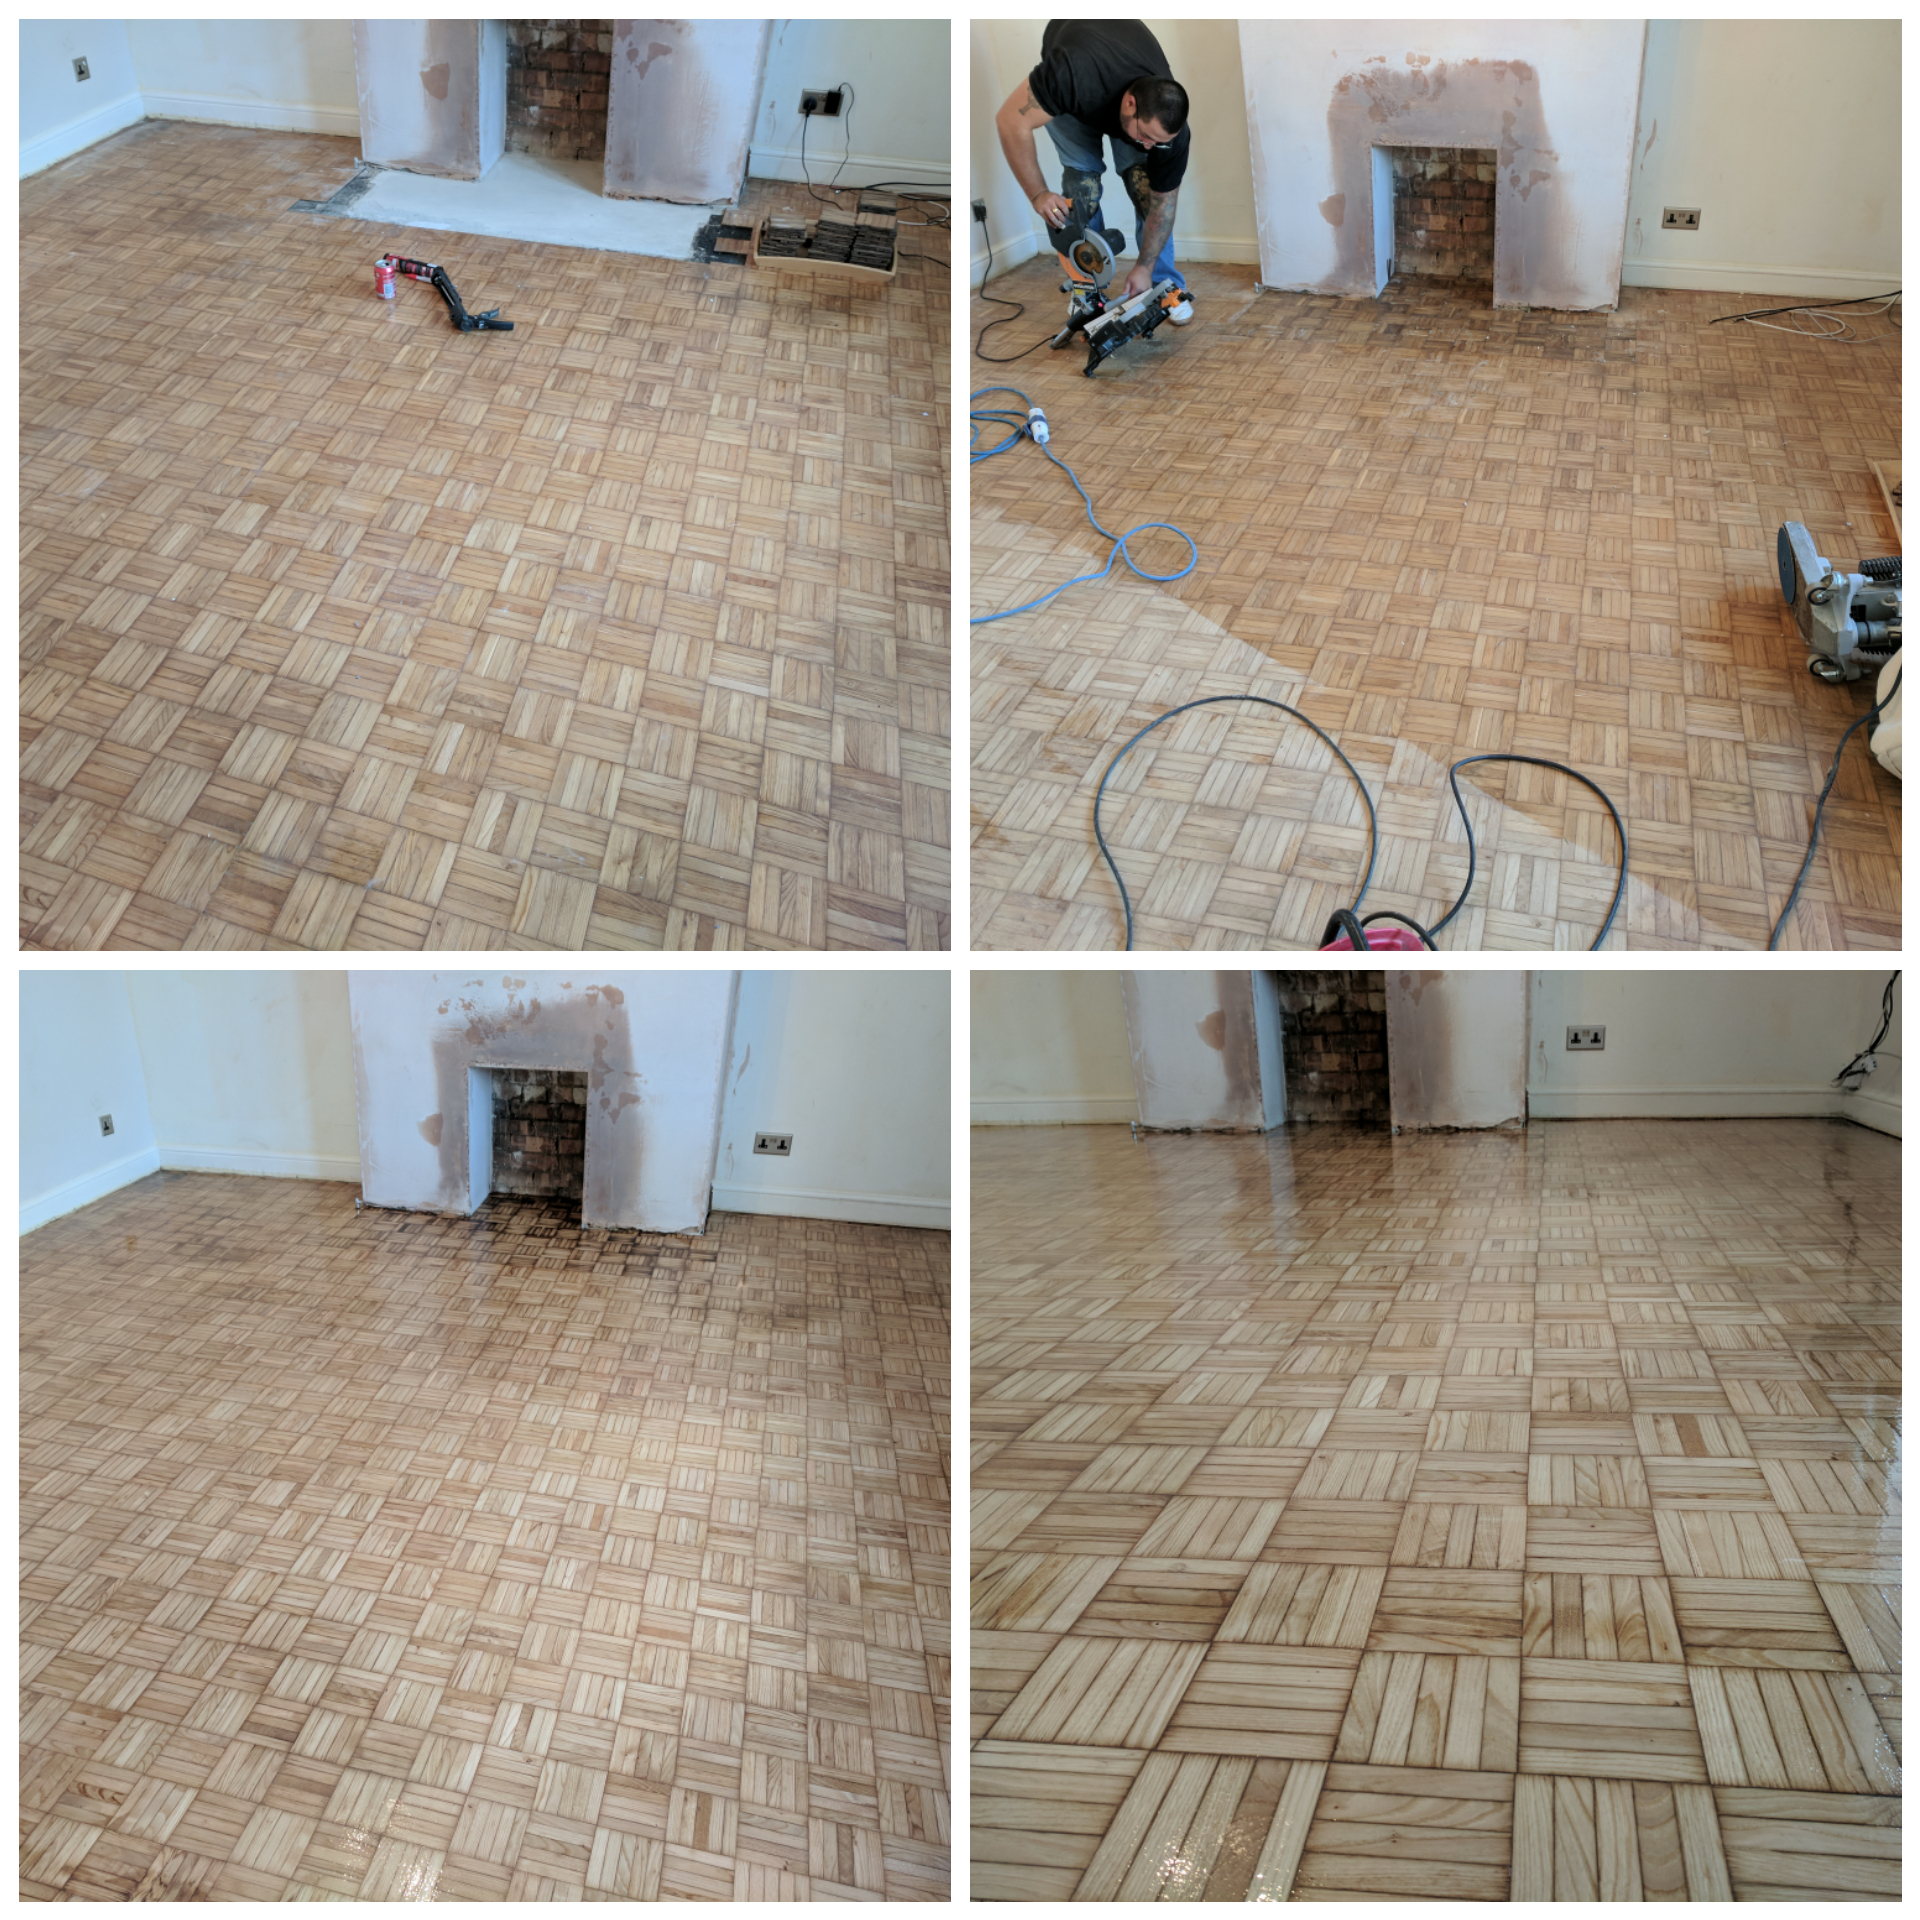 Parquet Finger Sanding And Refinishing Absolute Floor Sanding And